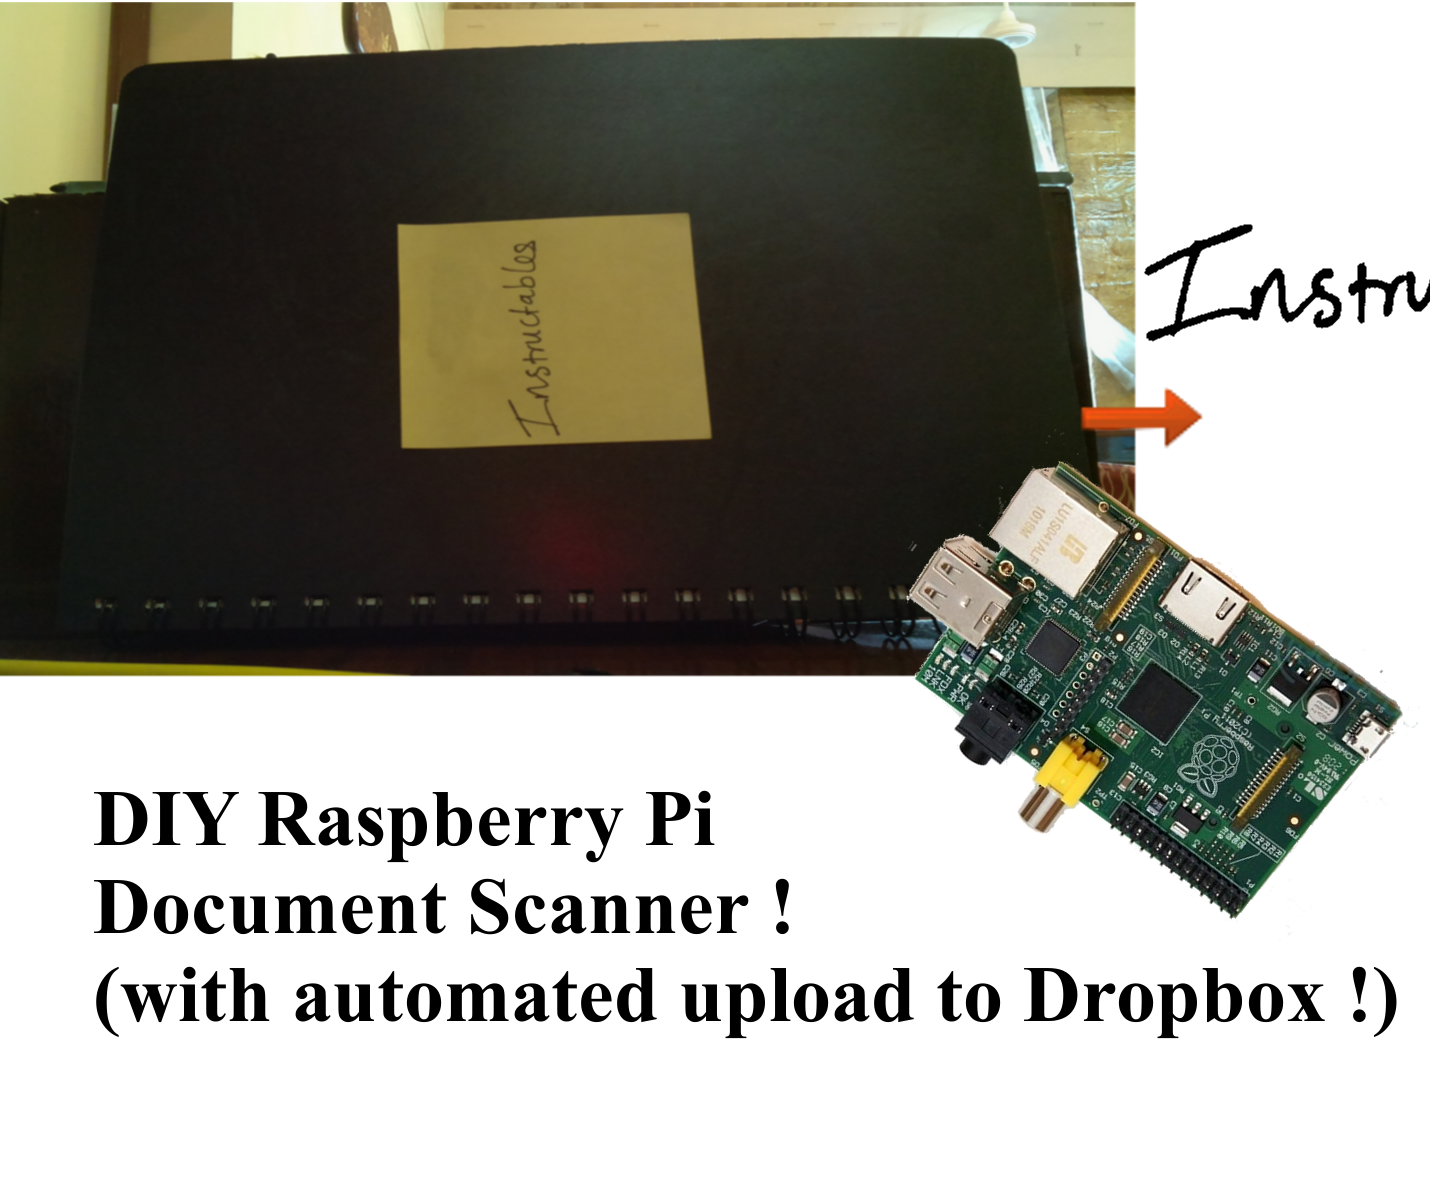 Raspberry Pi Based Document Scanner With Automatic Upload to Dropbox.